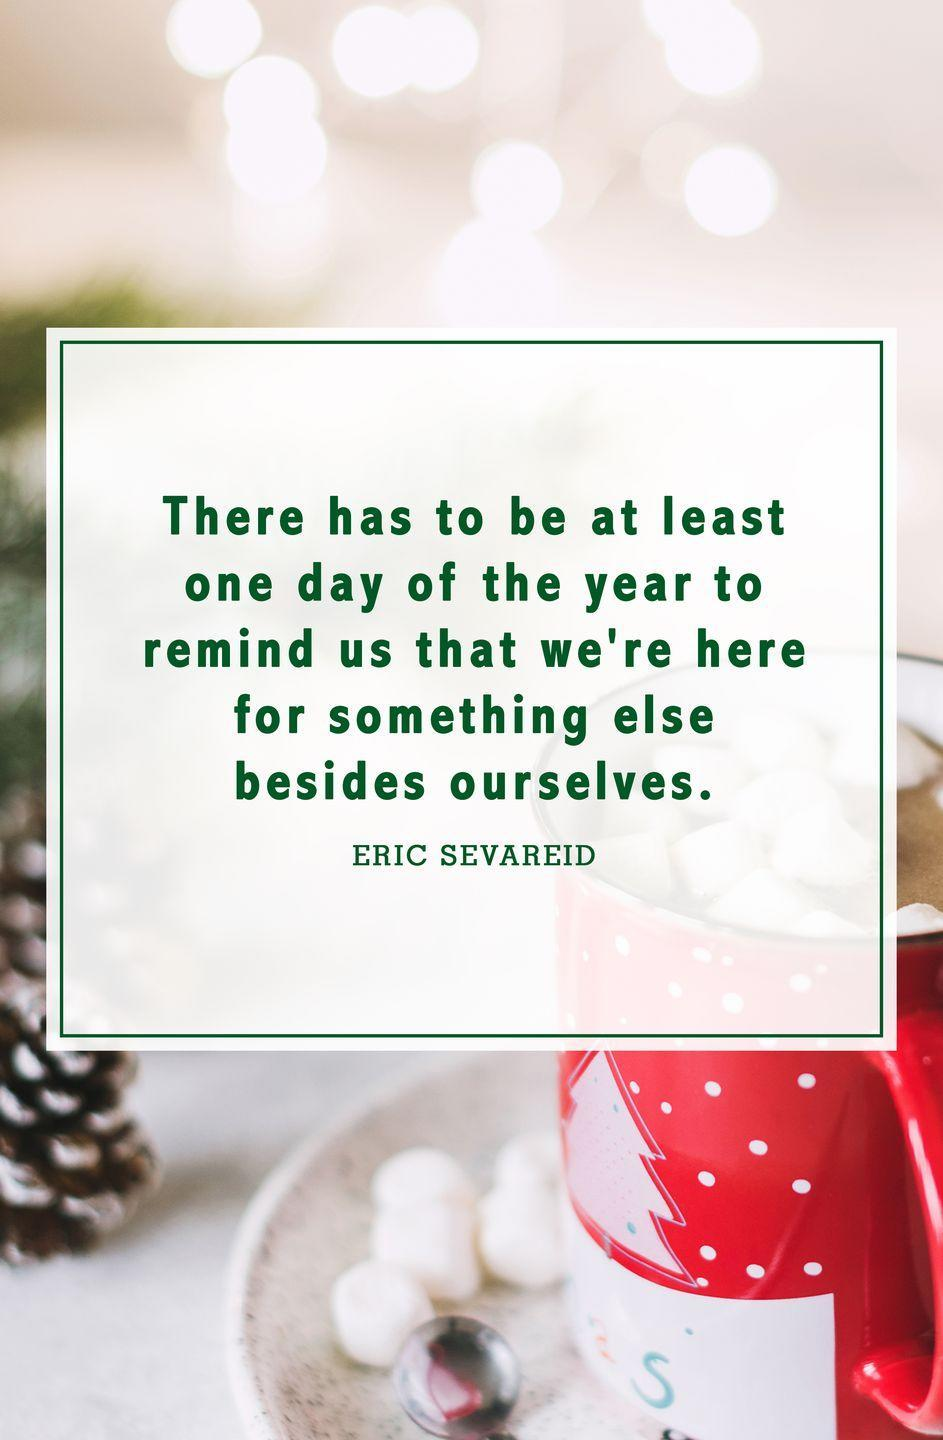 """<p>""""There has to be at least one day of the year to remind us that we're here for something else besides ourselves.""""</p>"""